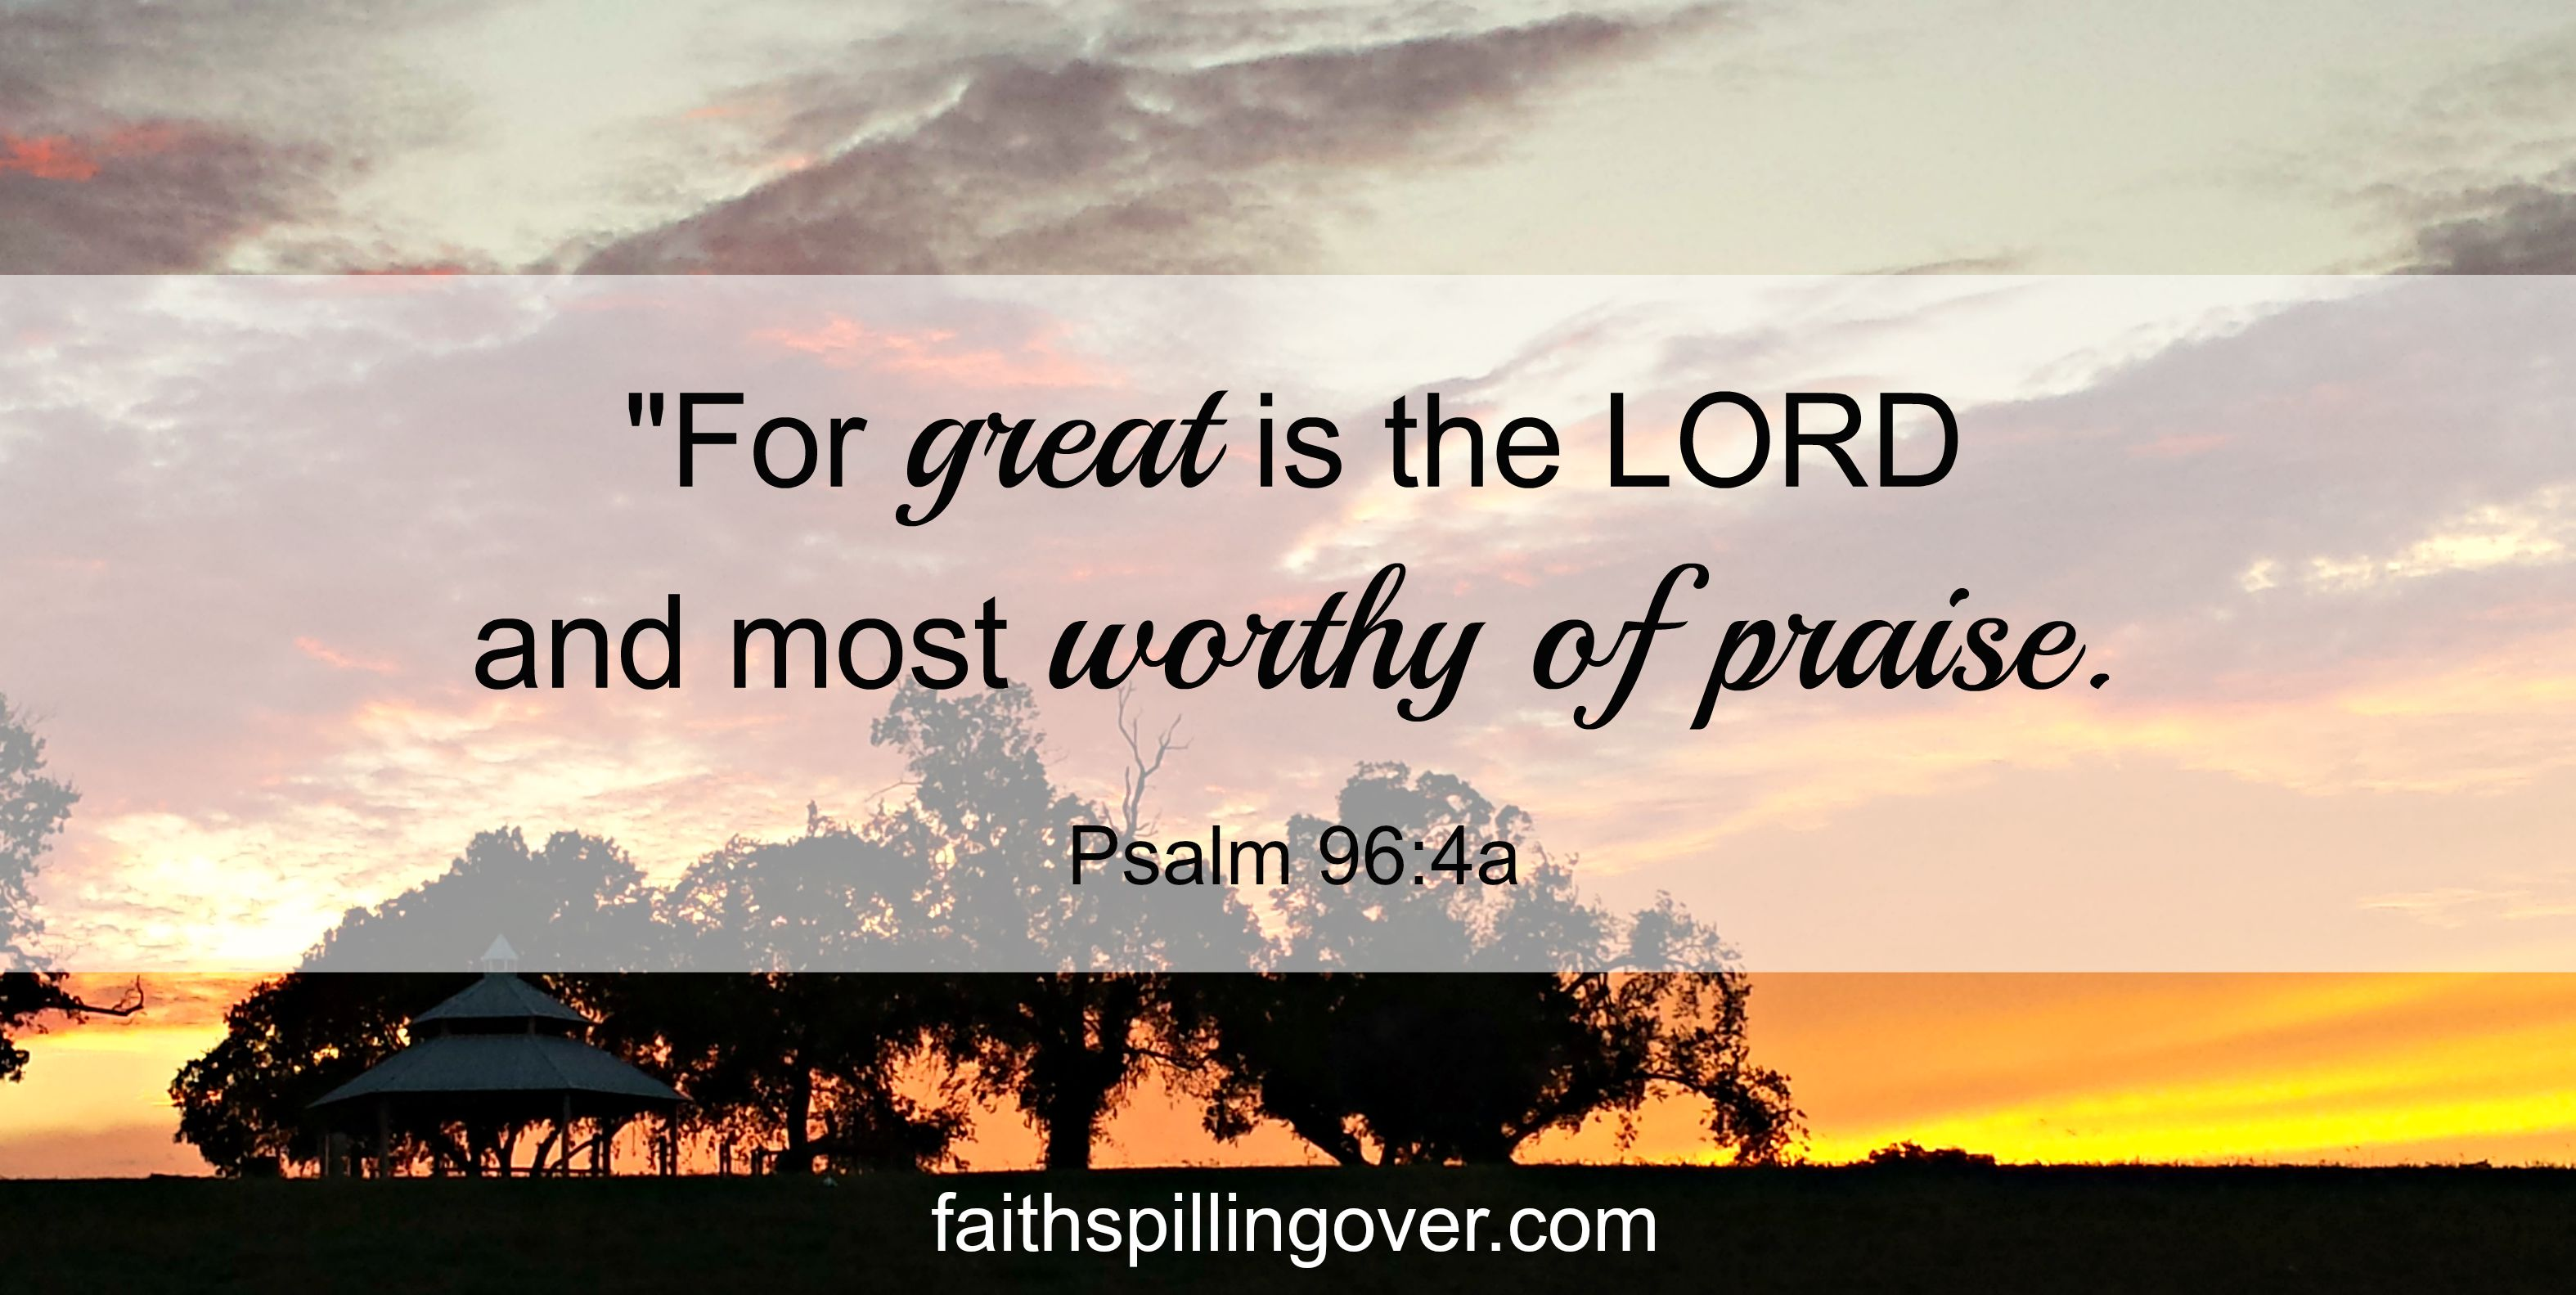 Great is the Lord scripture